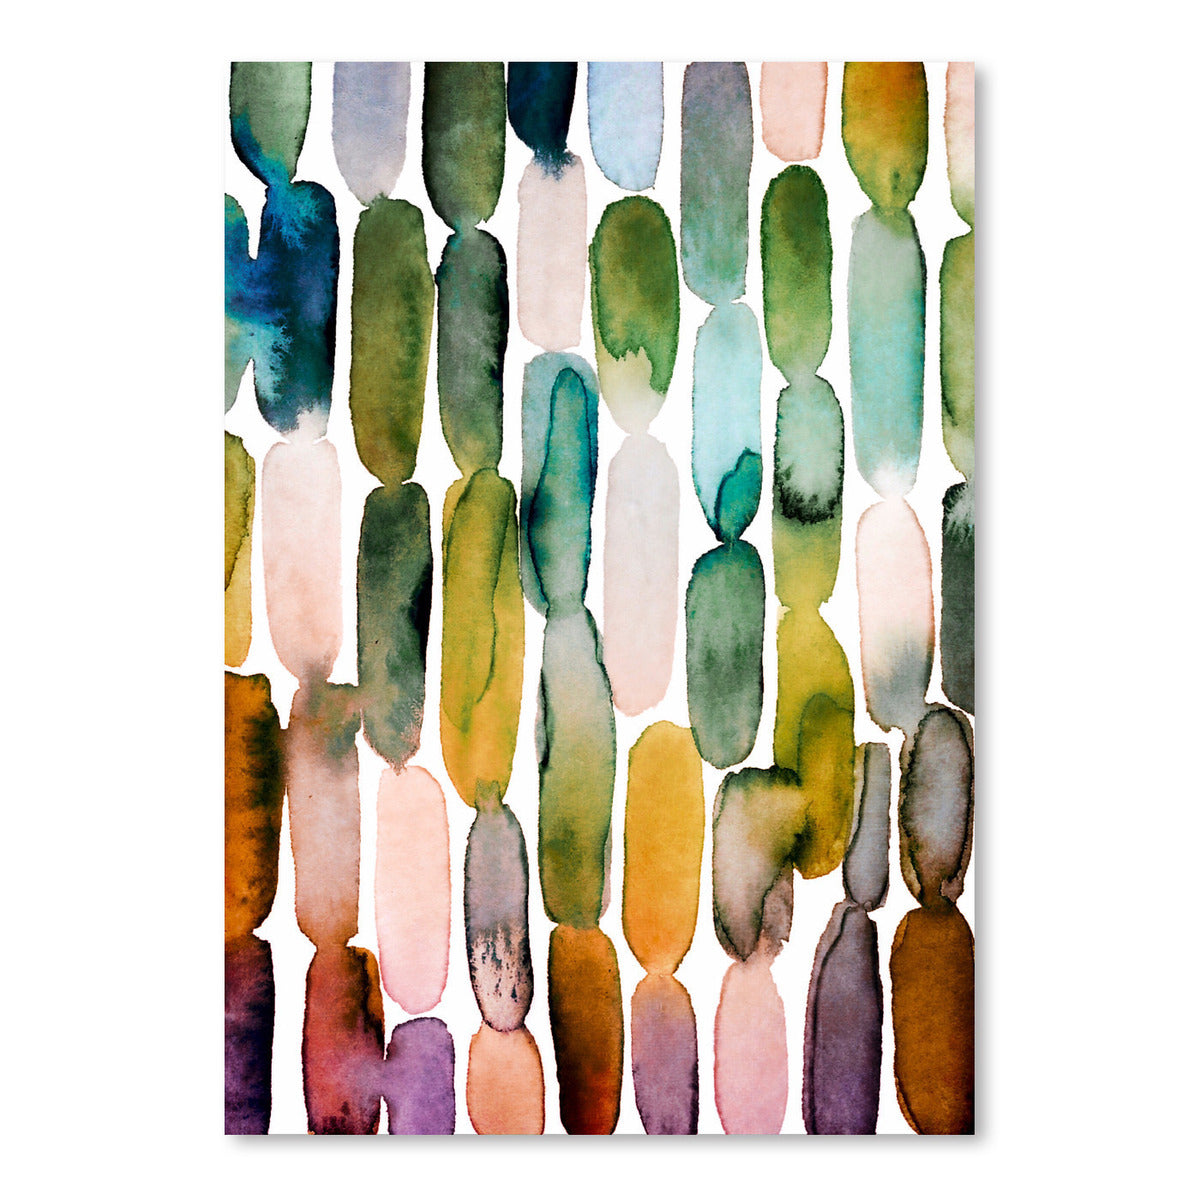 Watercolor Strokes 1 by Lisa Nohren - Art Print - Americanflat